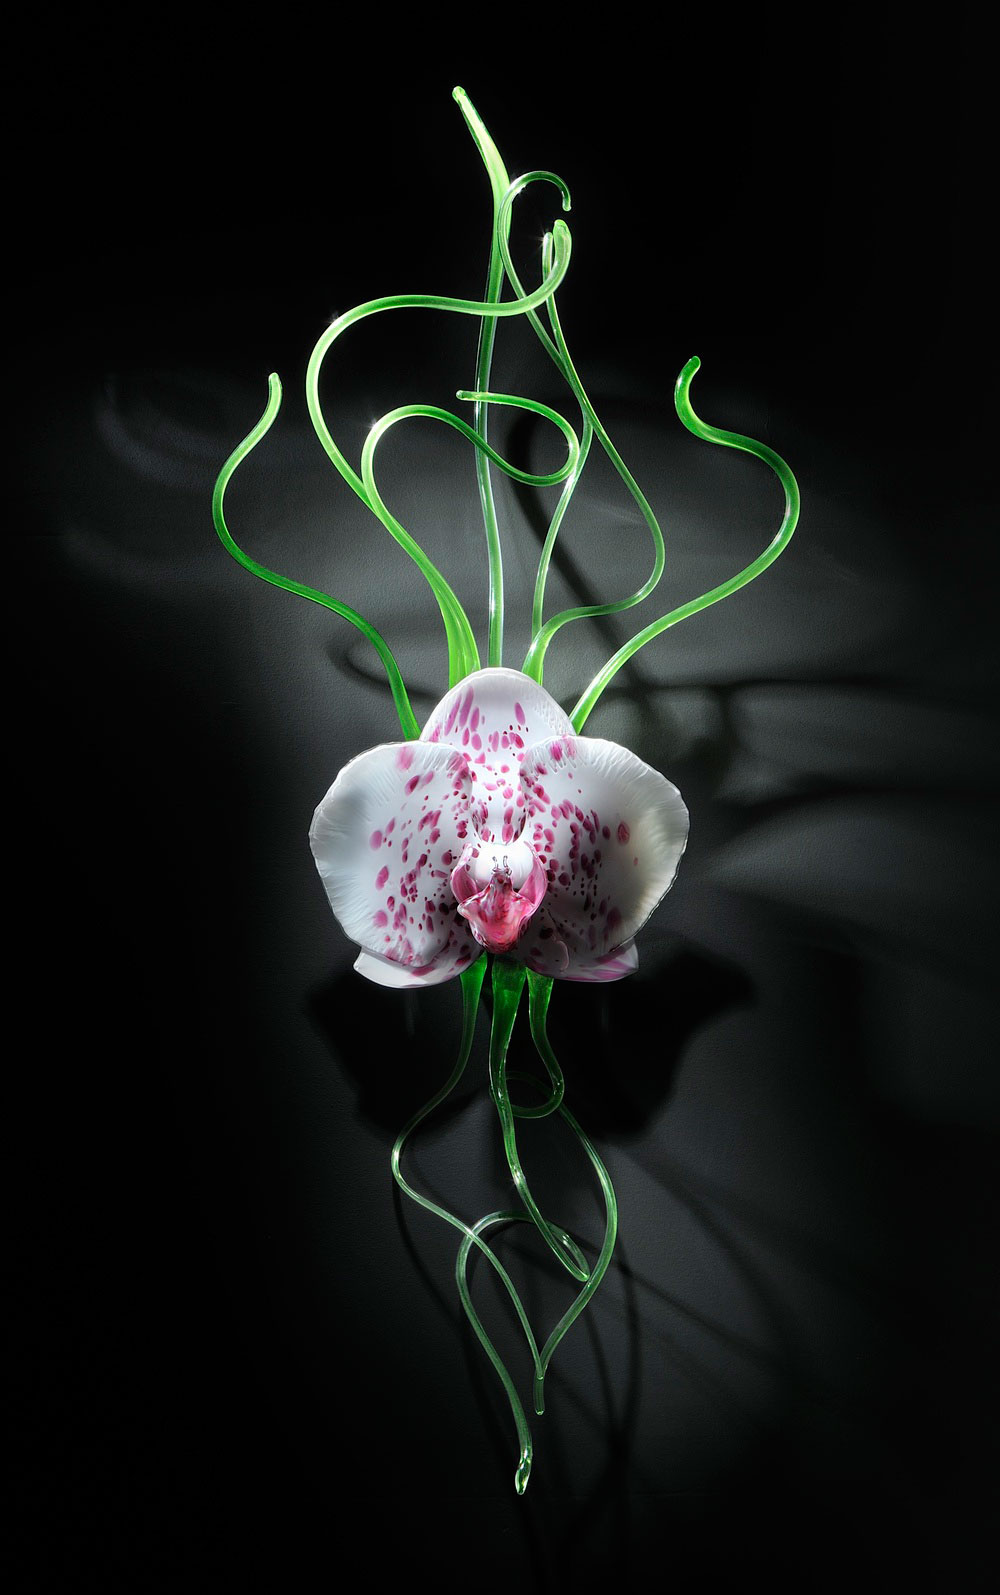 Gigantic And Realistic Flower Sculptures Made From Glass -2